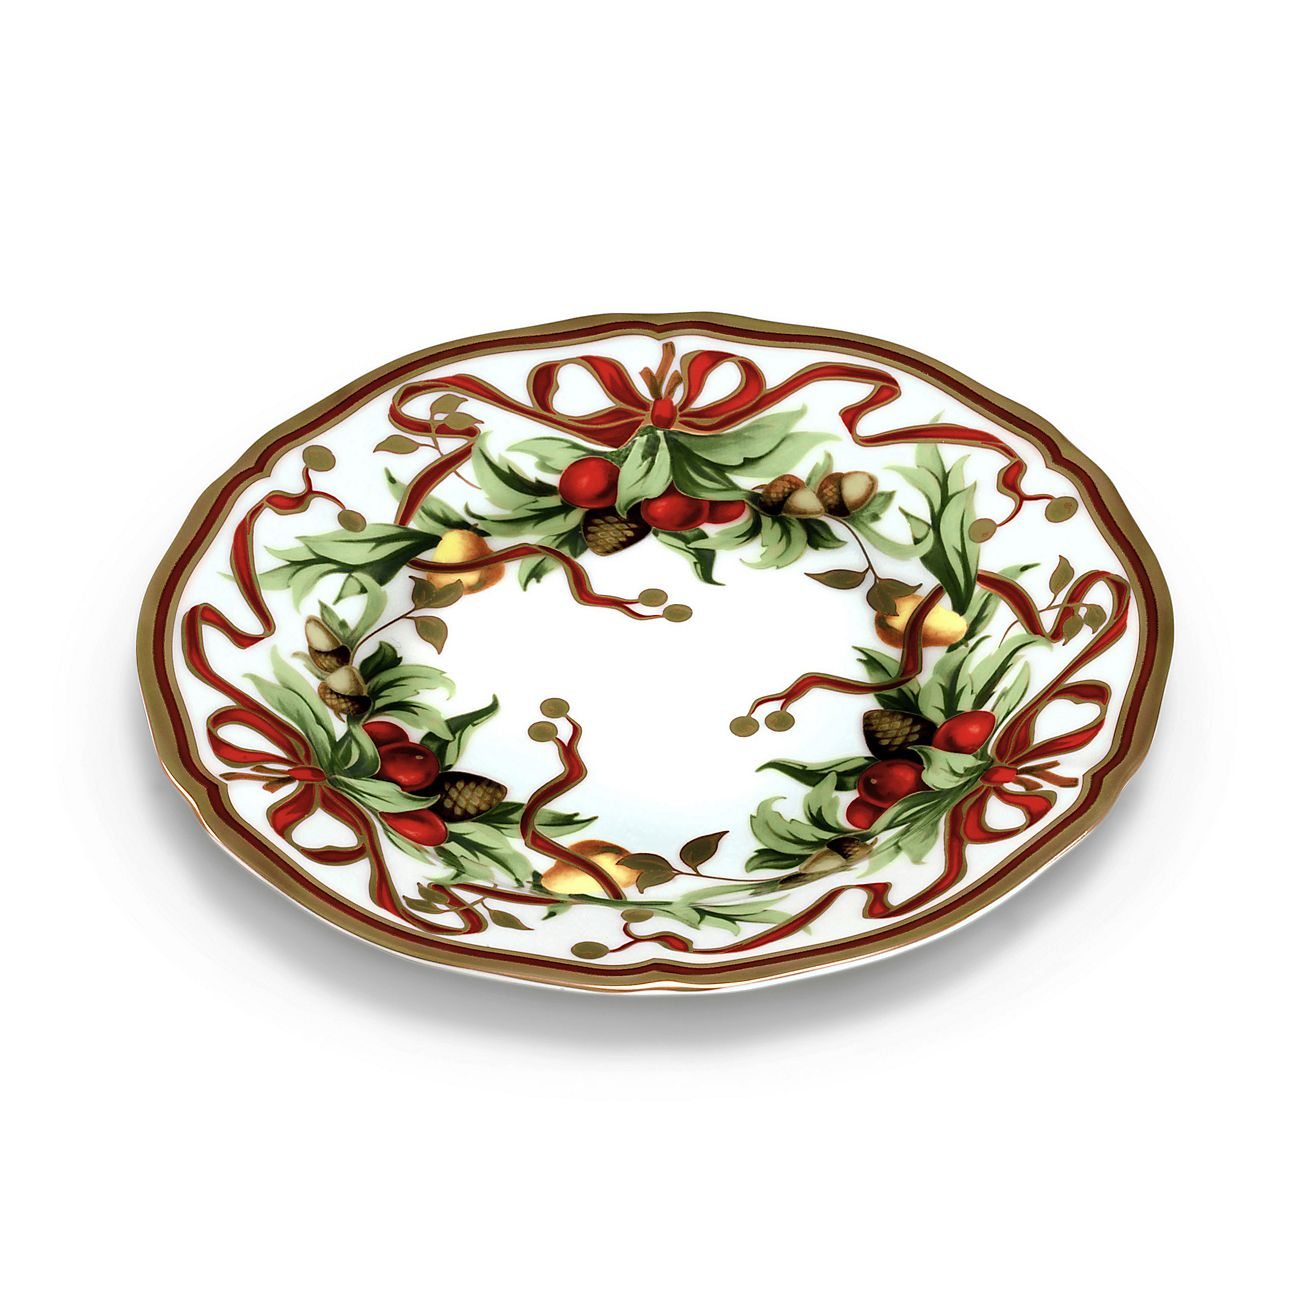 Tiffany Holiday™ dessert plate in porcelain. | Tiffany & Co.